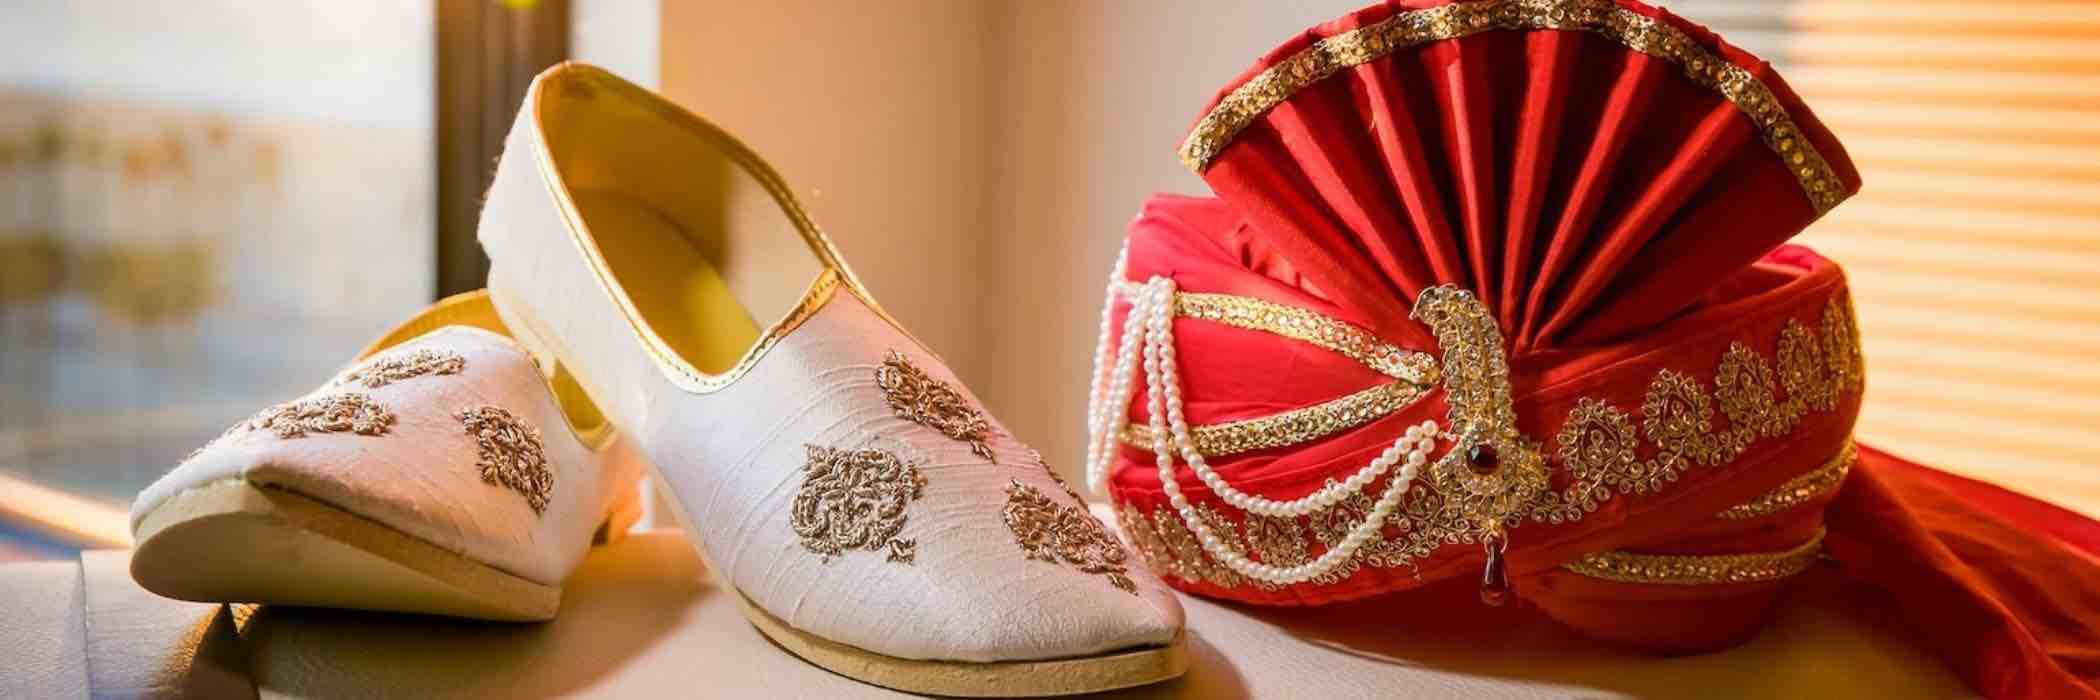 Indian Wedding Shoes for Groom